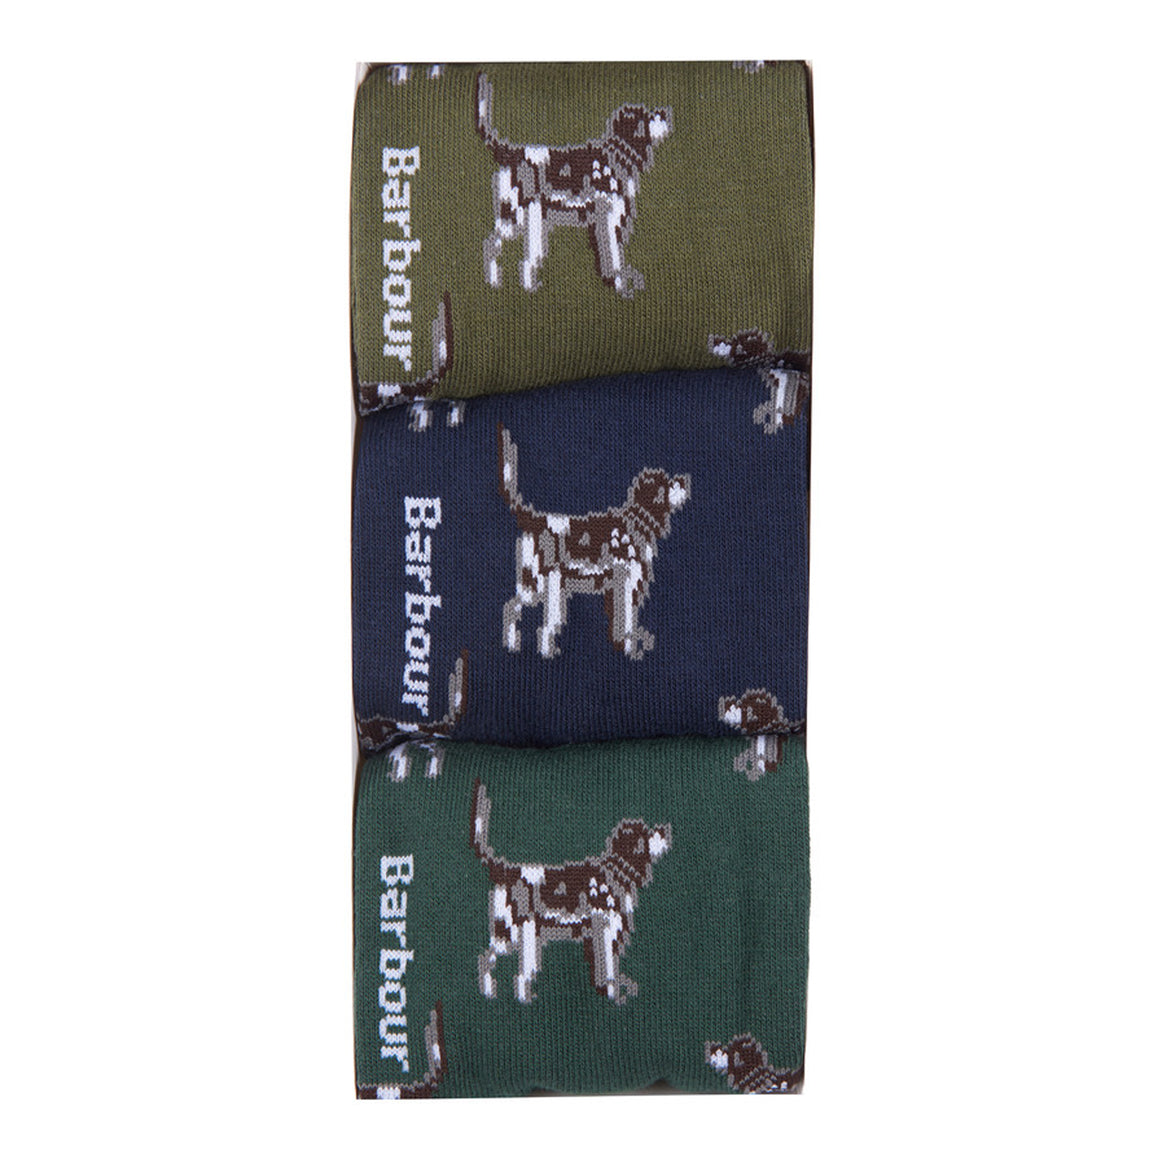 Pointer Dog Socks Gift Box for Men in Olive and Navy